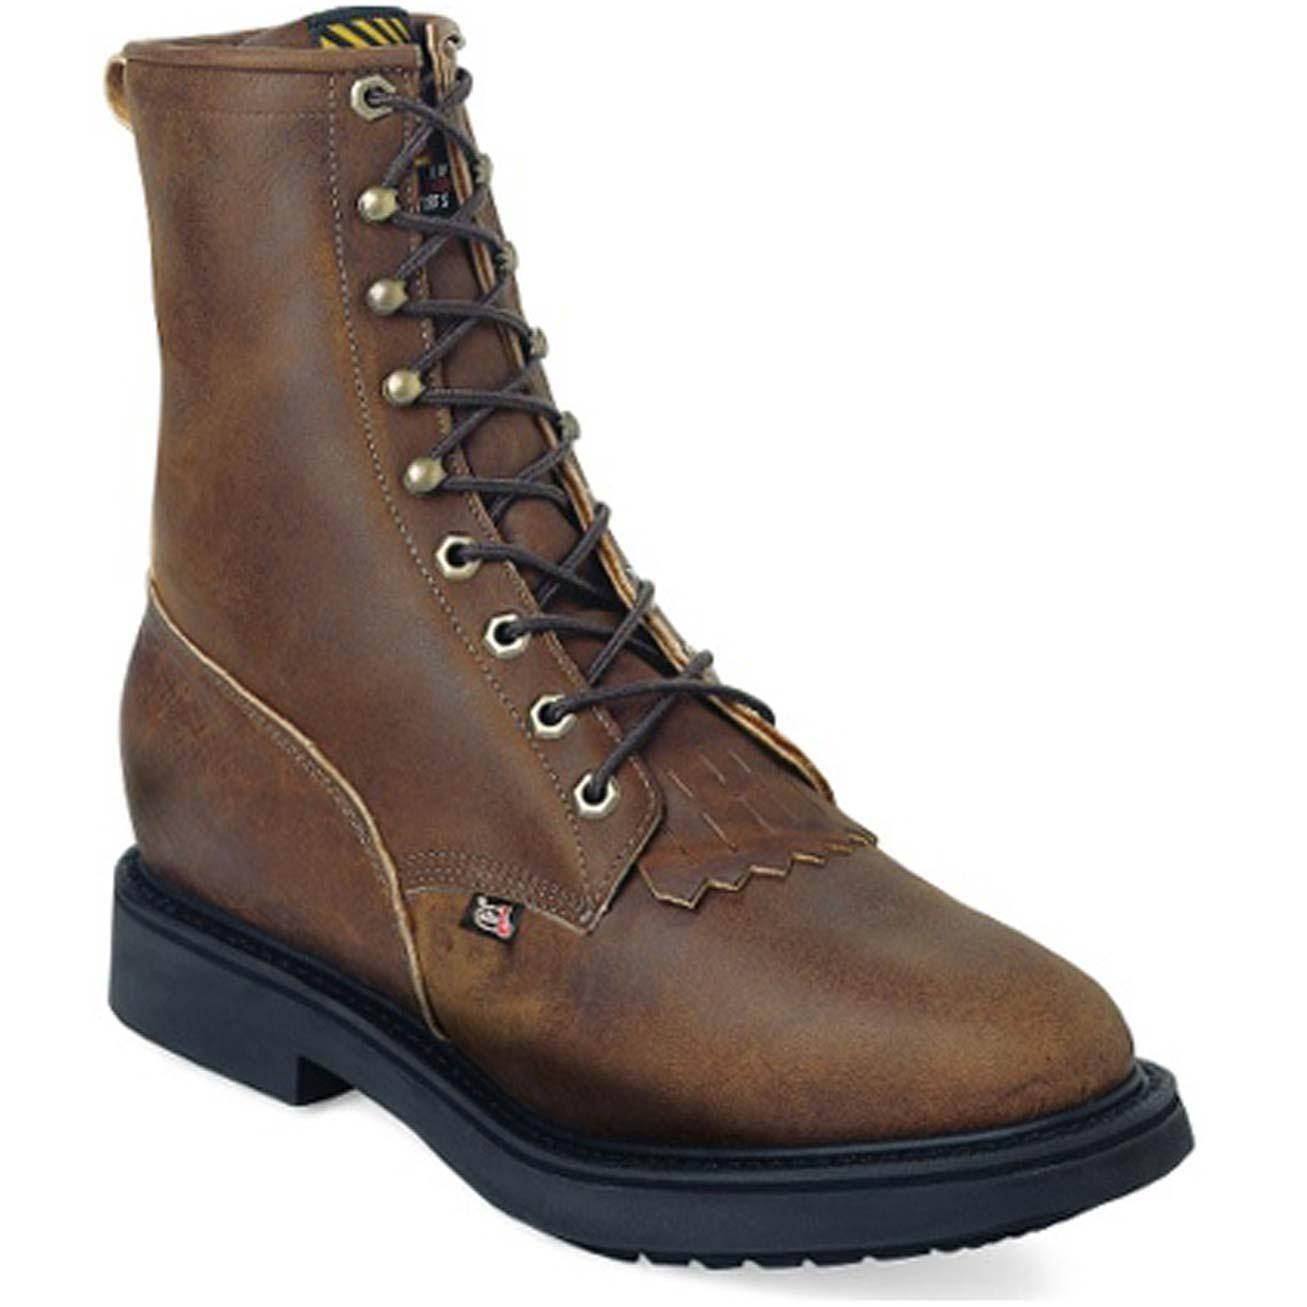 4083e4a5720 Justin Work Conductor Double Comfort Lacer Western Work Boot